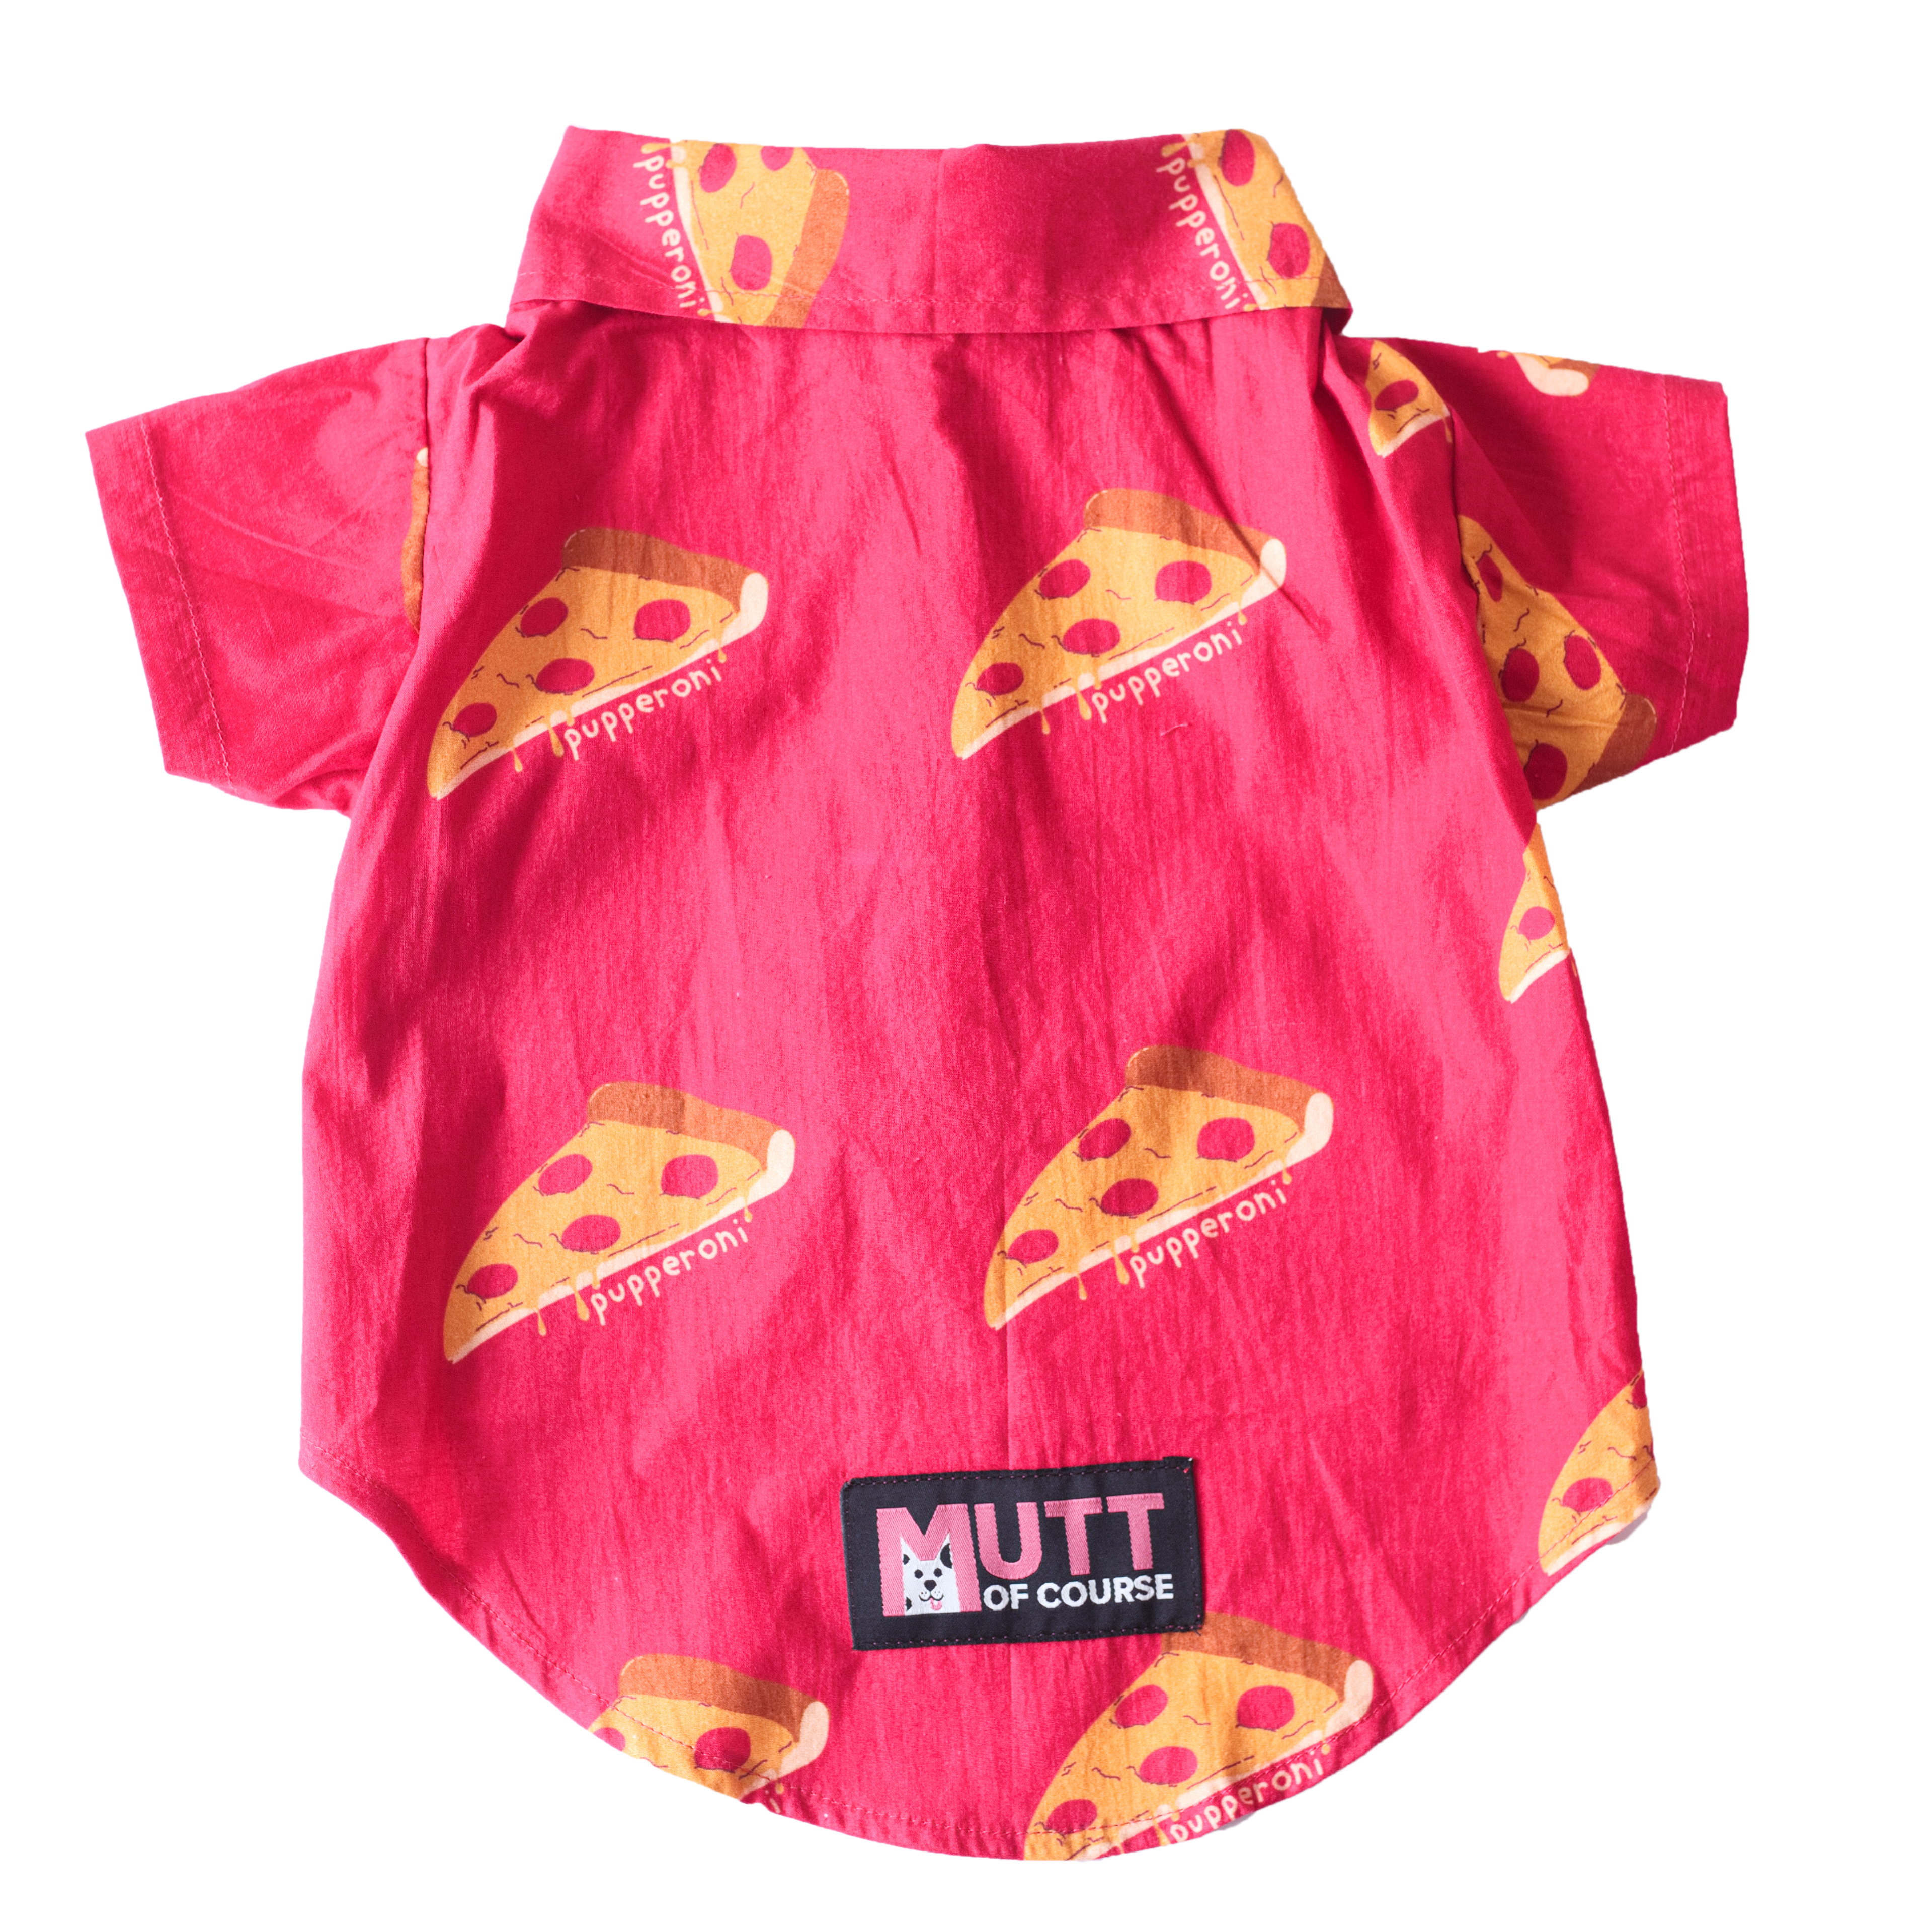 Mutt of Course Pupperoni Pizza Shirt for Dogs- XL